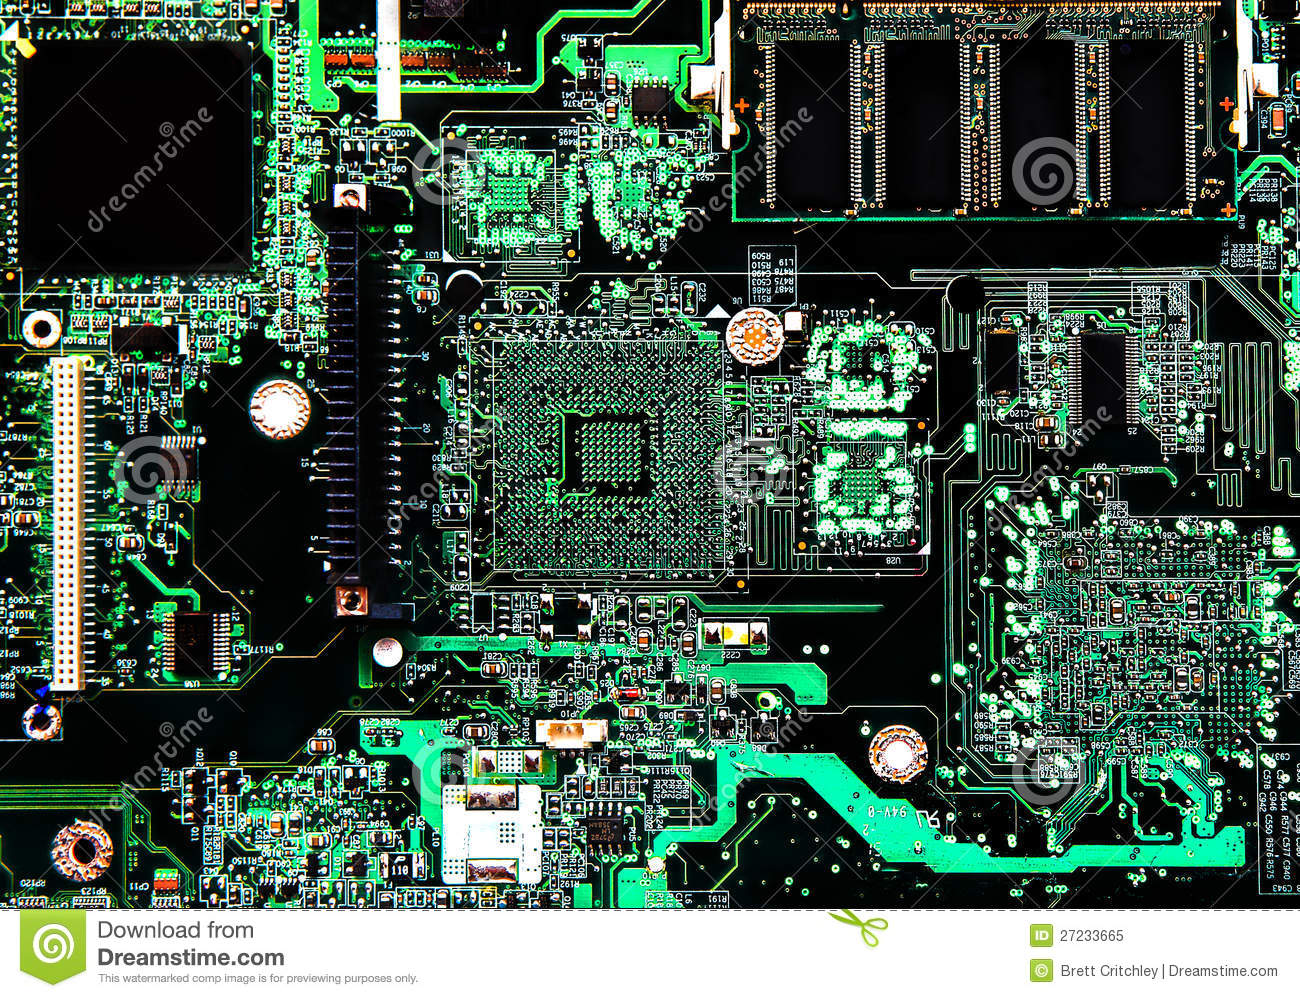 Computer Circuit Board Stock Image. Image Of Board, Chip